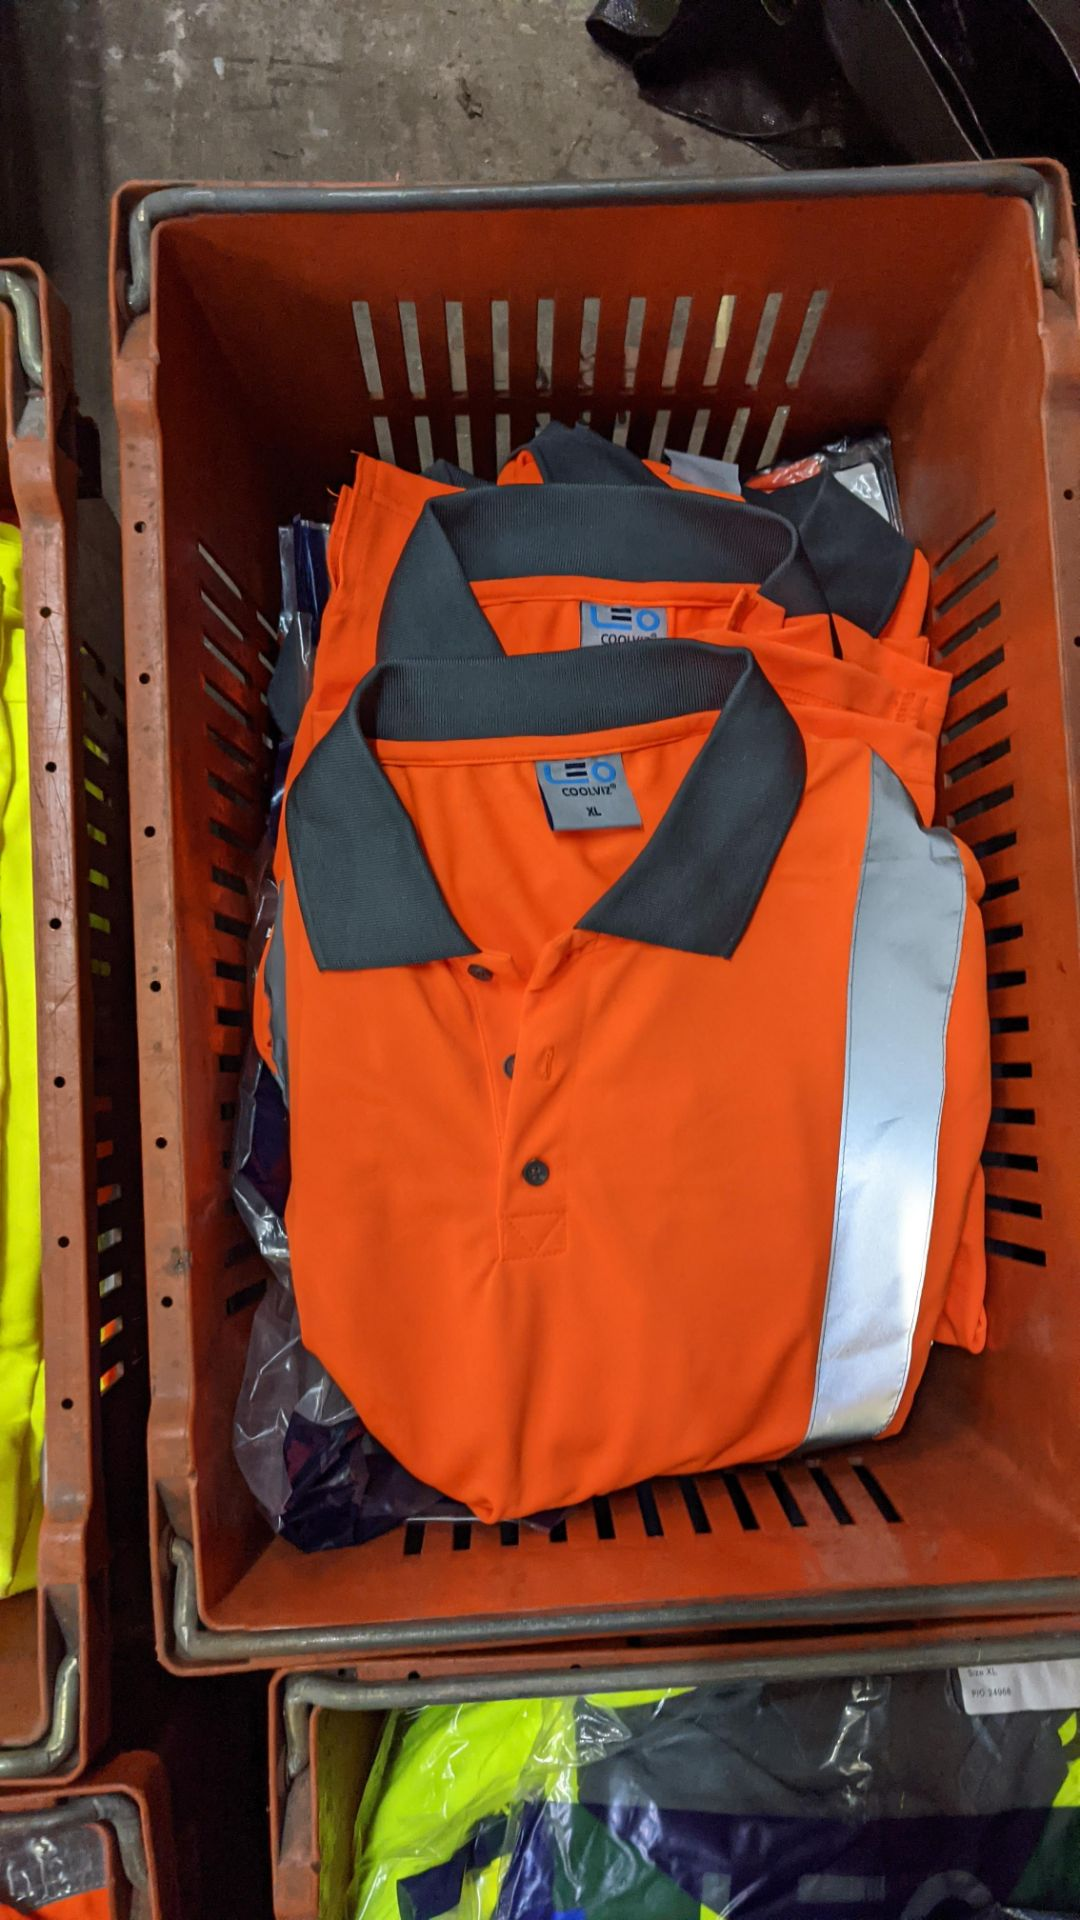 13 off hi-vis polo shirts (orange) - Image 4 of 4